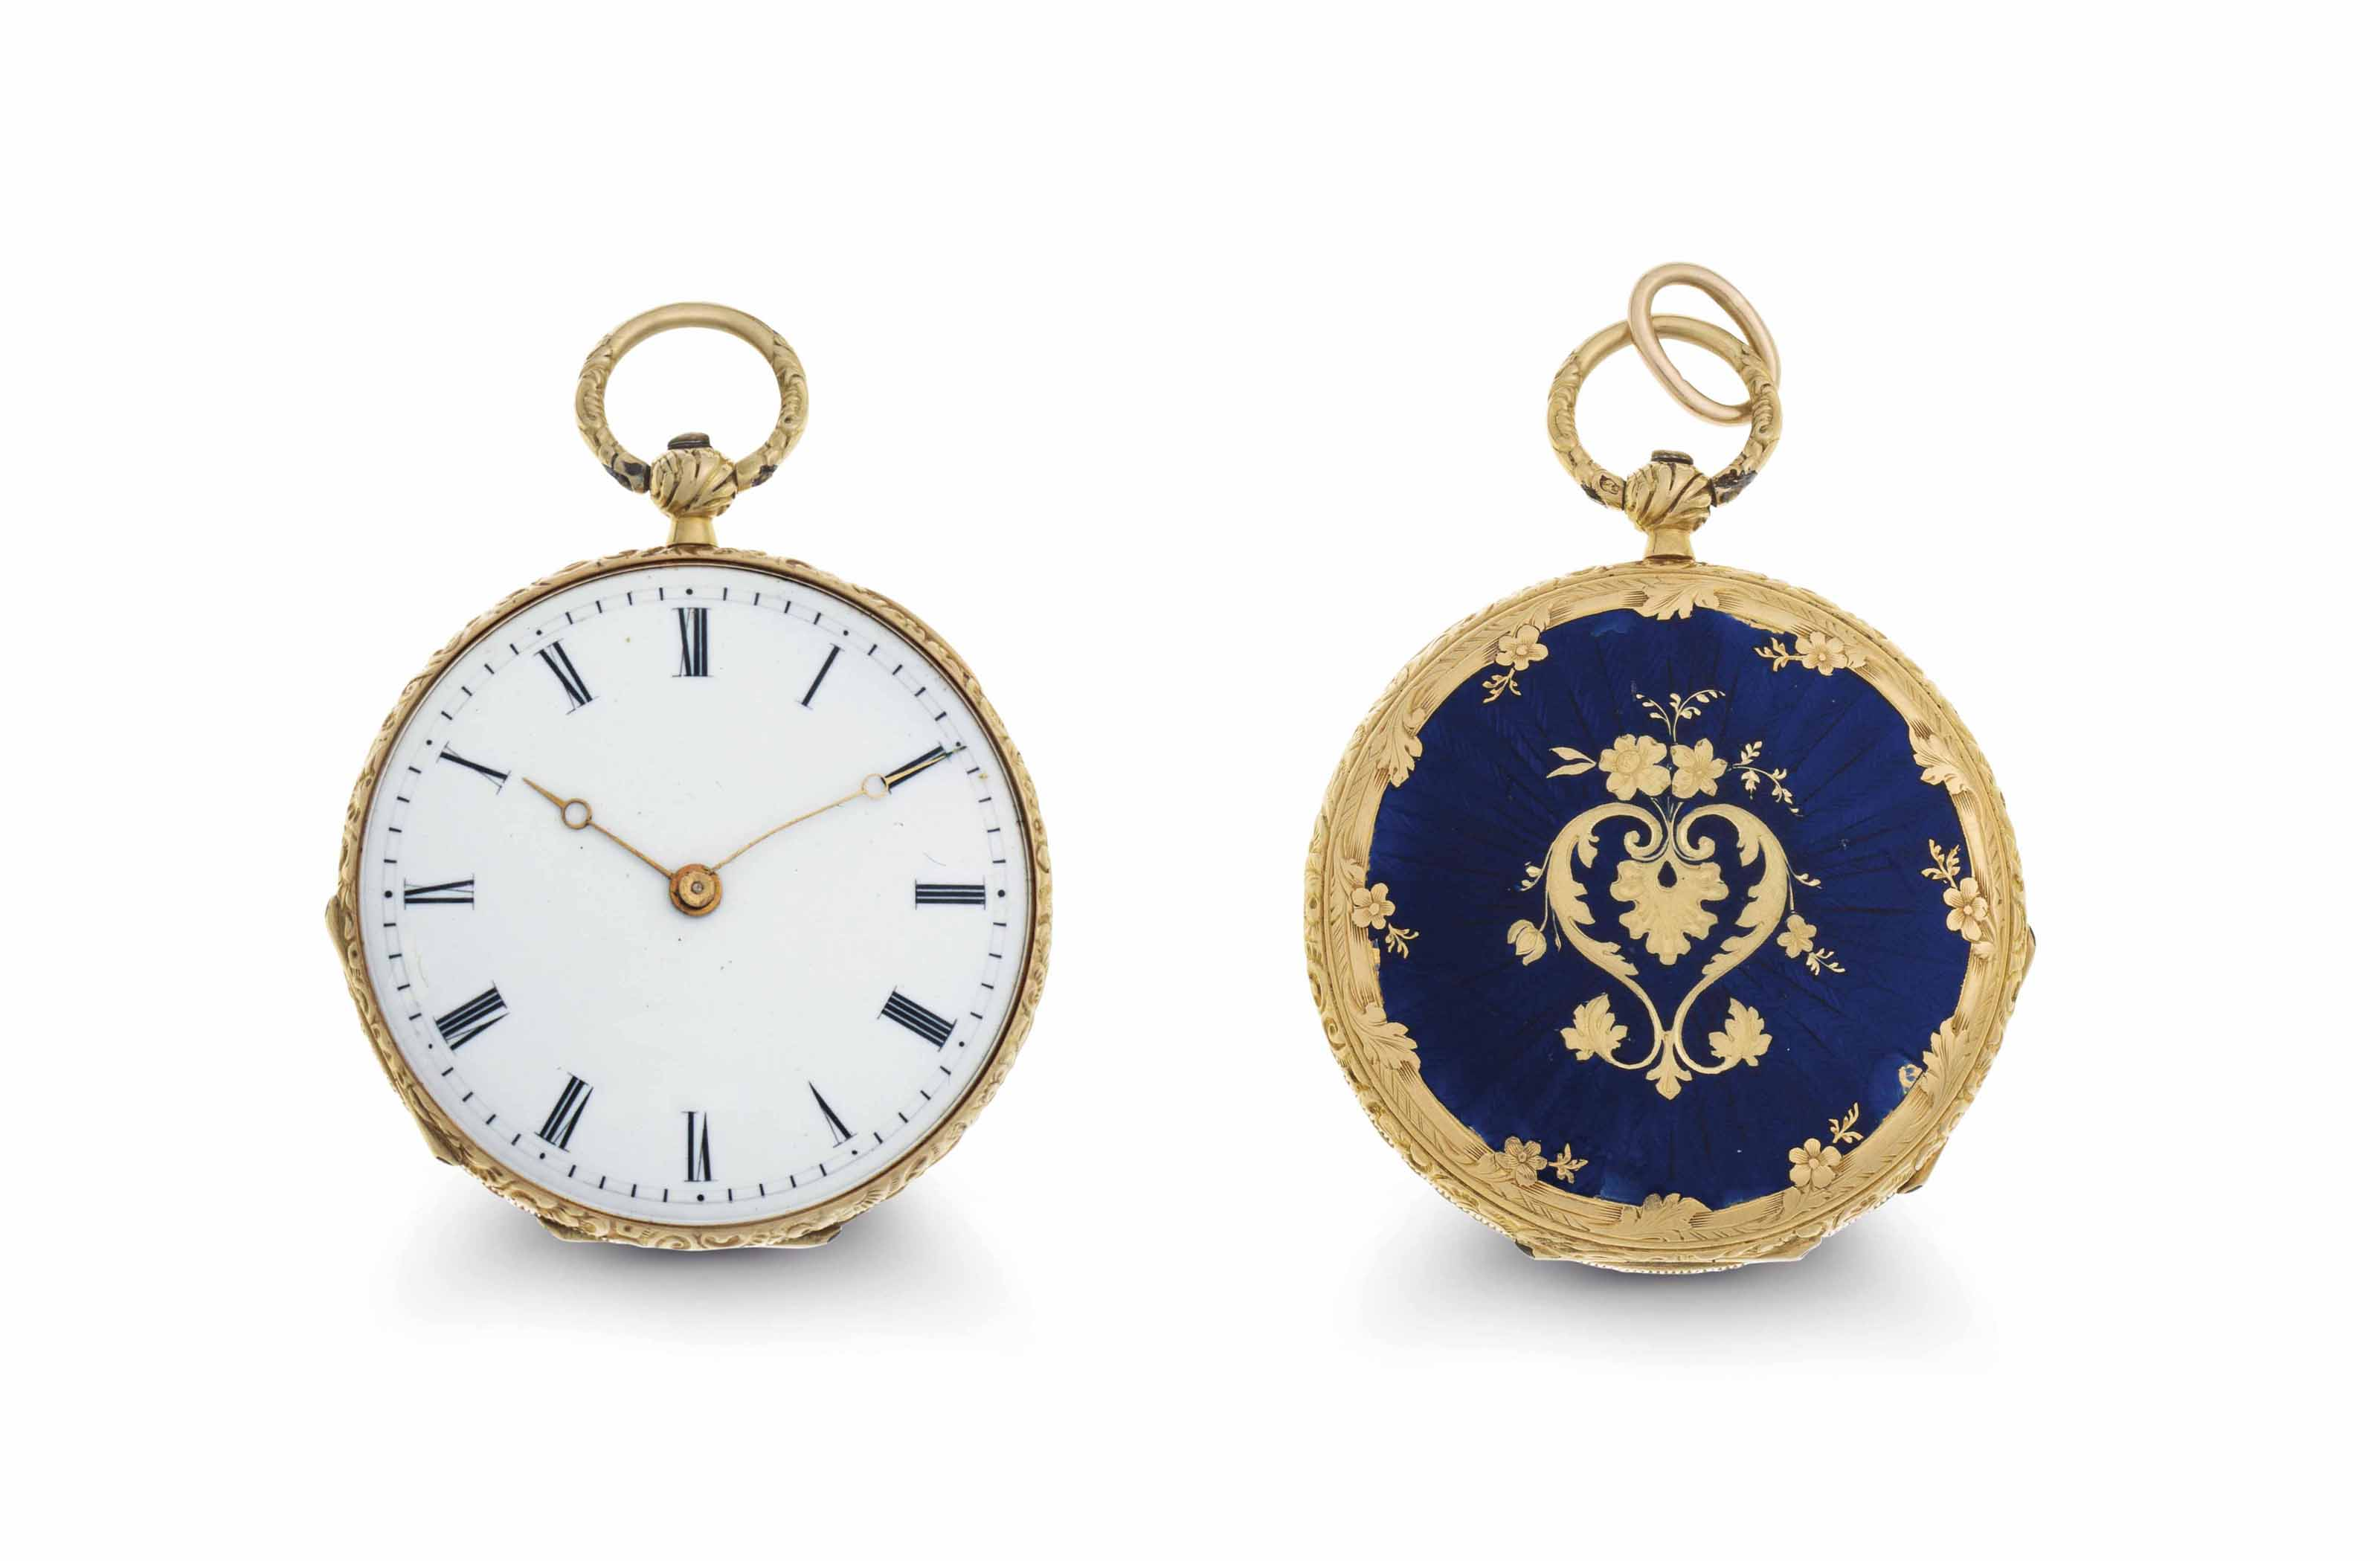 Piguet. An 18k Gold and Enamel